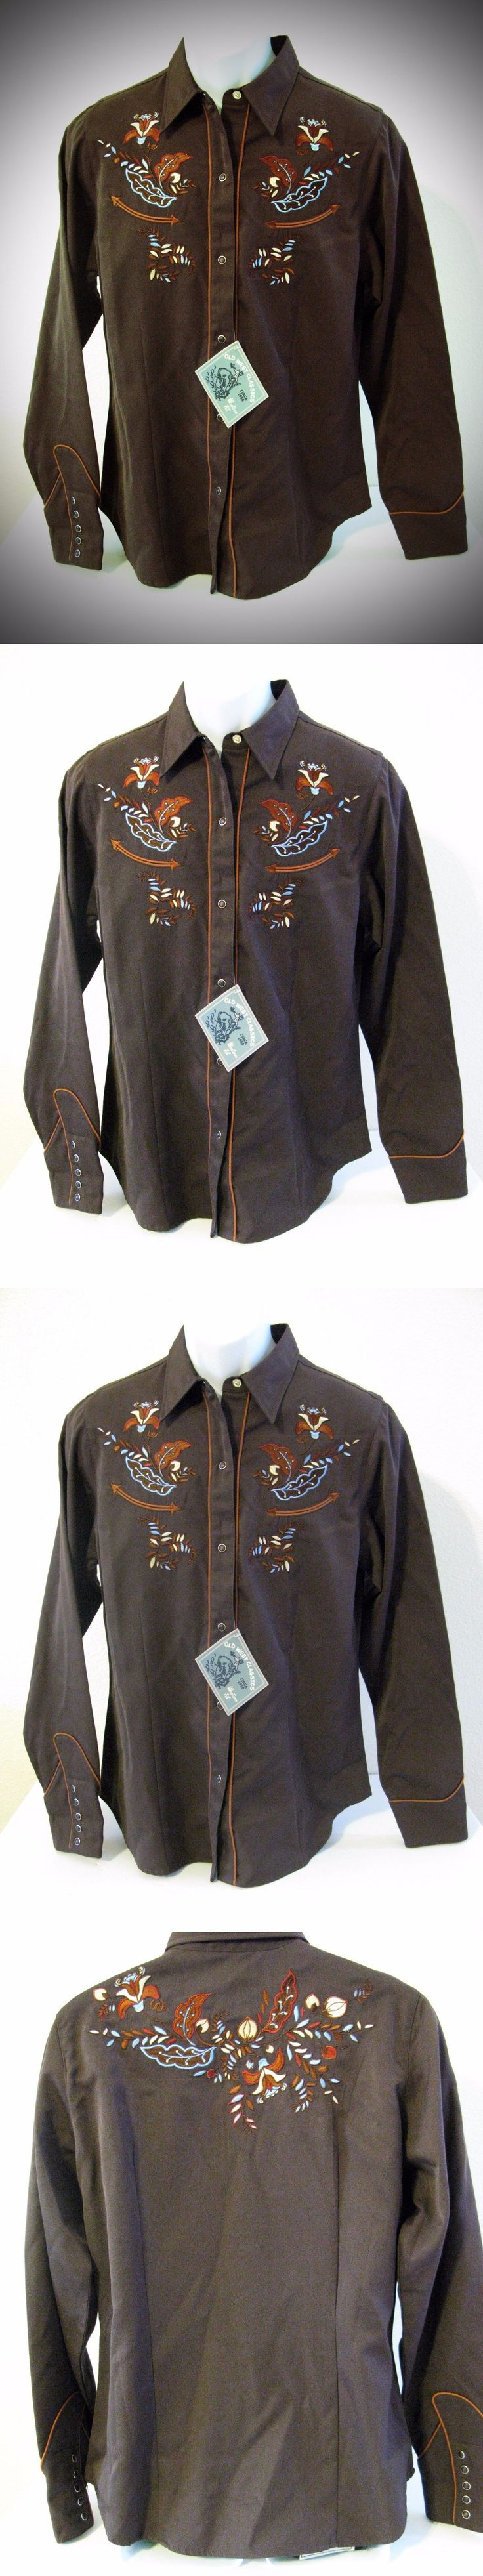 Other Rider Clothing 3167: Roper Ladies Brown Embroidered Long Sleeve Western Rodeo Show Shirt S. Large BUY IT NOW ONLY: $34.99